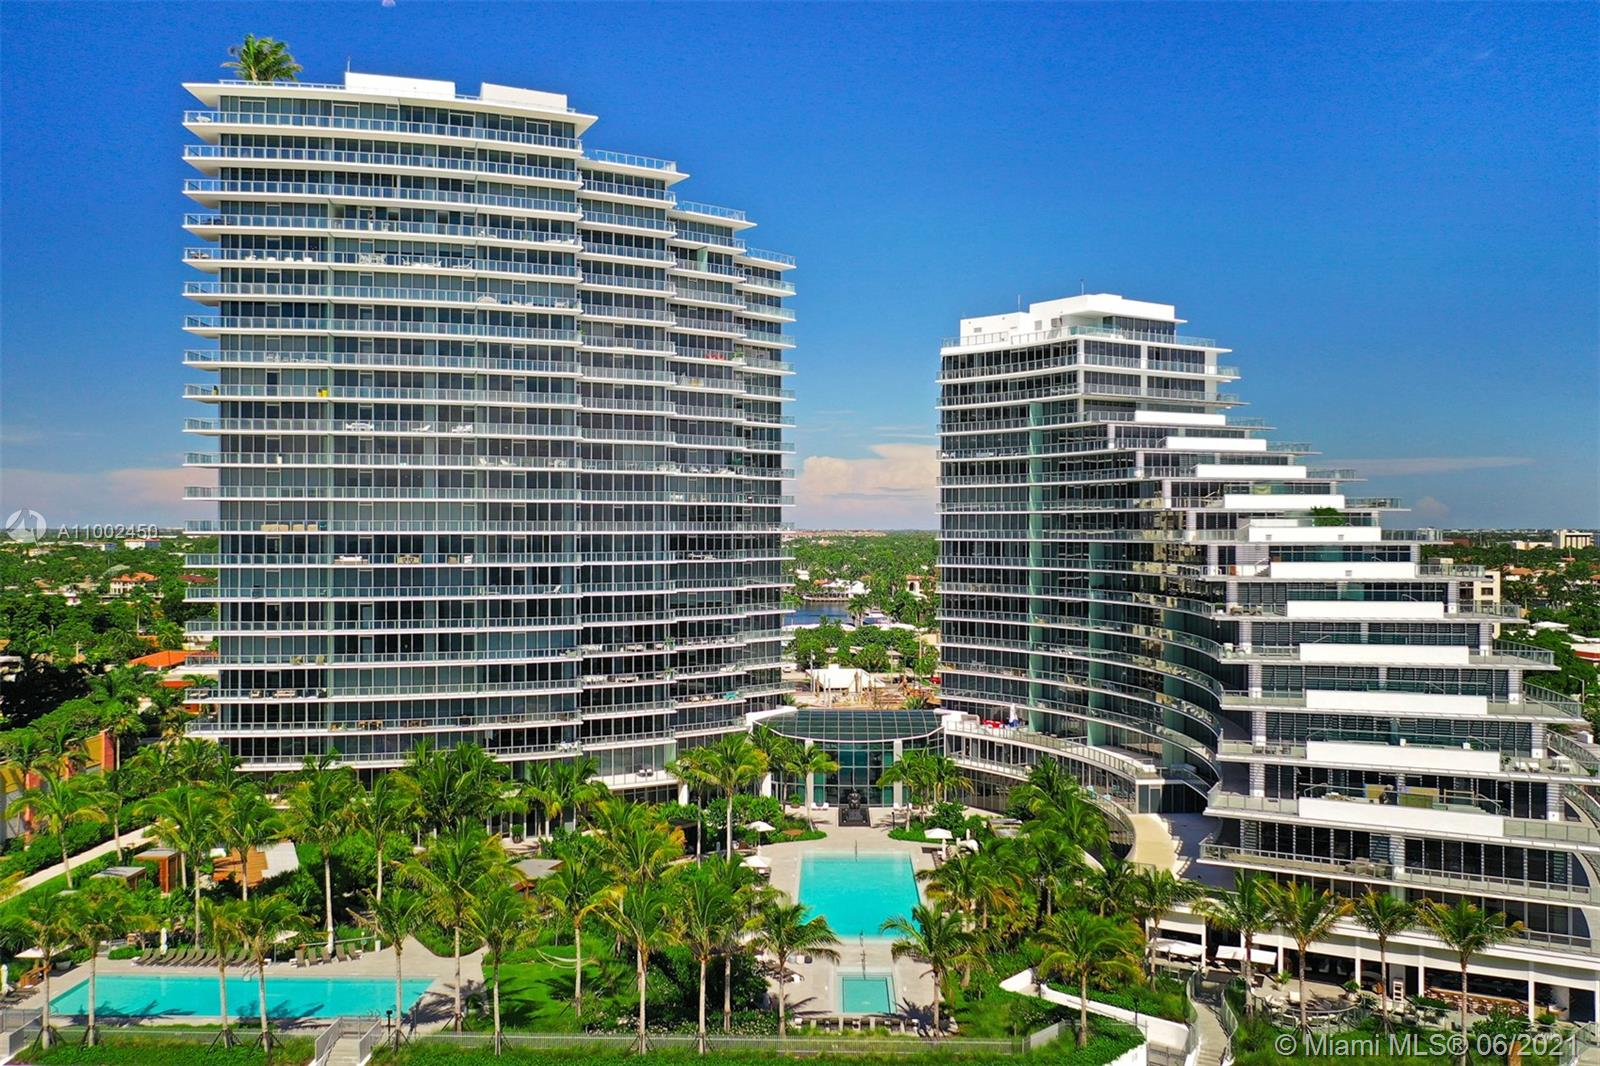 N604 RESIDENCE ARRIVES INTO YOUR PRIVATE ELEVATOR TO EXPERIENCE A GOREGOUS NORTH OCEAN, INTRACOASTAL AND SUNSET VIEWS. THIS UNIQUE 2 BEDROOM PLUS DEN 3 BATH IS THE WIDEST 2 BEDROOM PLAN AT AUBERGE BEACH WITH THE LARGEST TERRACE OF 690 SQFT. UNIT FEATURES CHEF'S OPEN KITCHEN WITH WHITE ITALIAN CABINETRY, WHITE MARBLE COUNTERTOPS, TALL WINE STORAGE, WOLF GAS STOVE & ESPRESSO/CAPPUCCINO INTEGRATED SYSTEM. AUBERGE BEACH WORLD CLASS AMENITIES INCLUDES FITNESS CENTER, GOLF SIMULATOR ROOM, NAPA WINE ROOM, SCREENING ROOM, DUNE RESTAURANT, FULL SERVICE SPA AND MUCH MORE. UNIT HAS A STORAGE SPACE LOCATED IN THE NORTH TOWER 2ND FLOOR #N112B